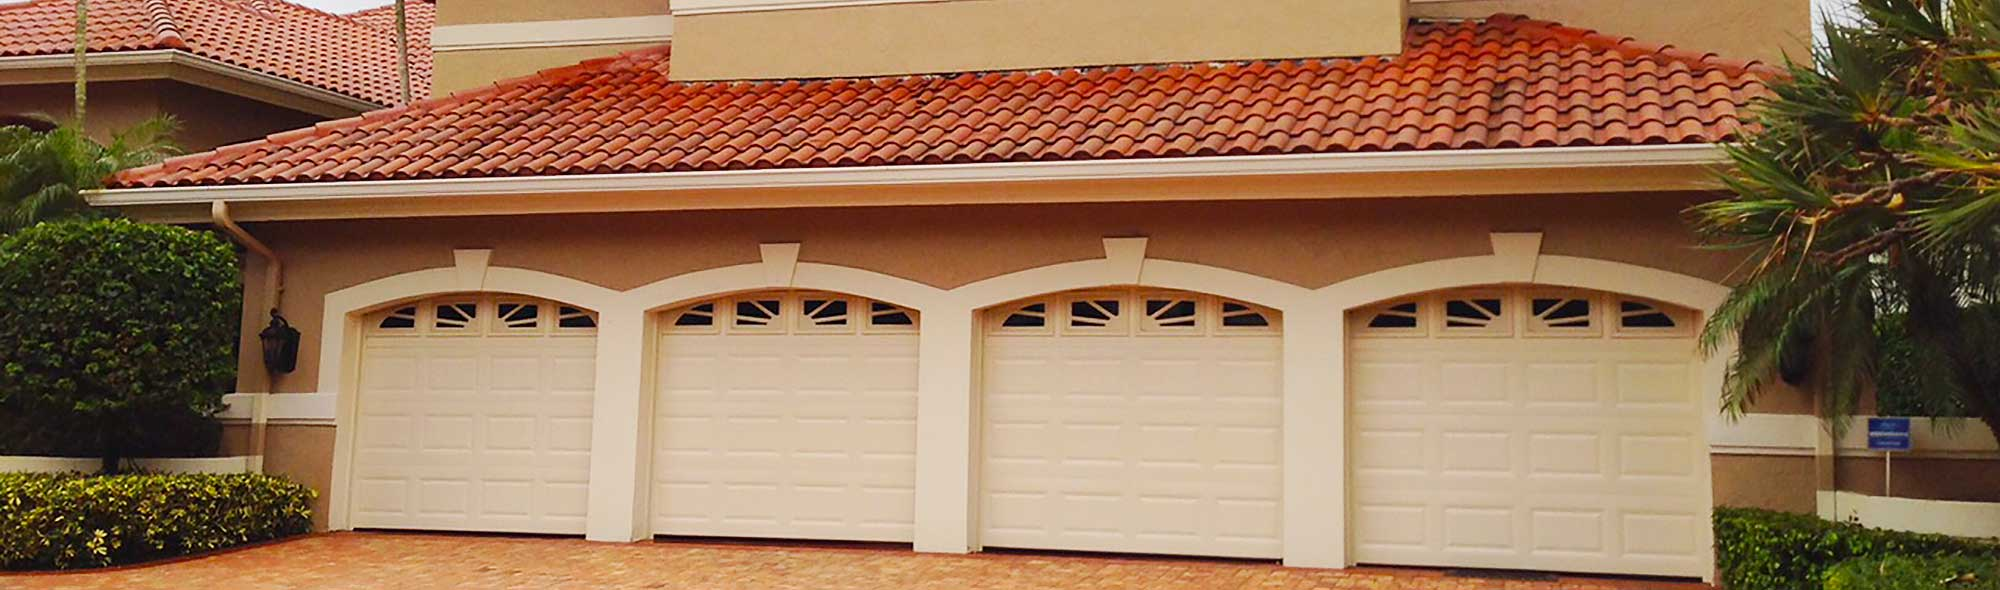 Garage Door Parts Near My Location Garage Door Installation Repair Service Near Boca Raton Fort